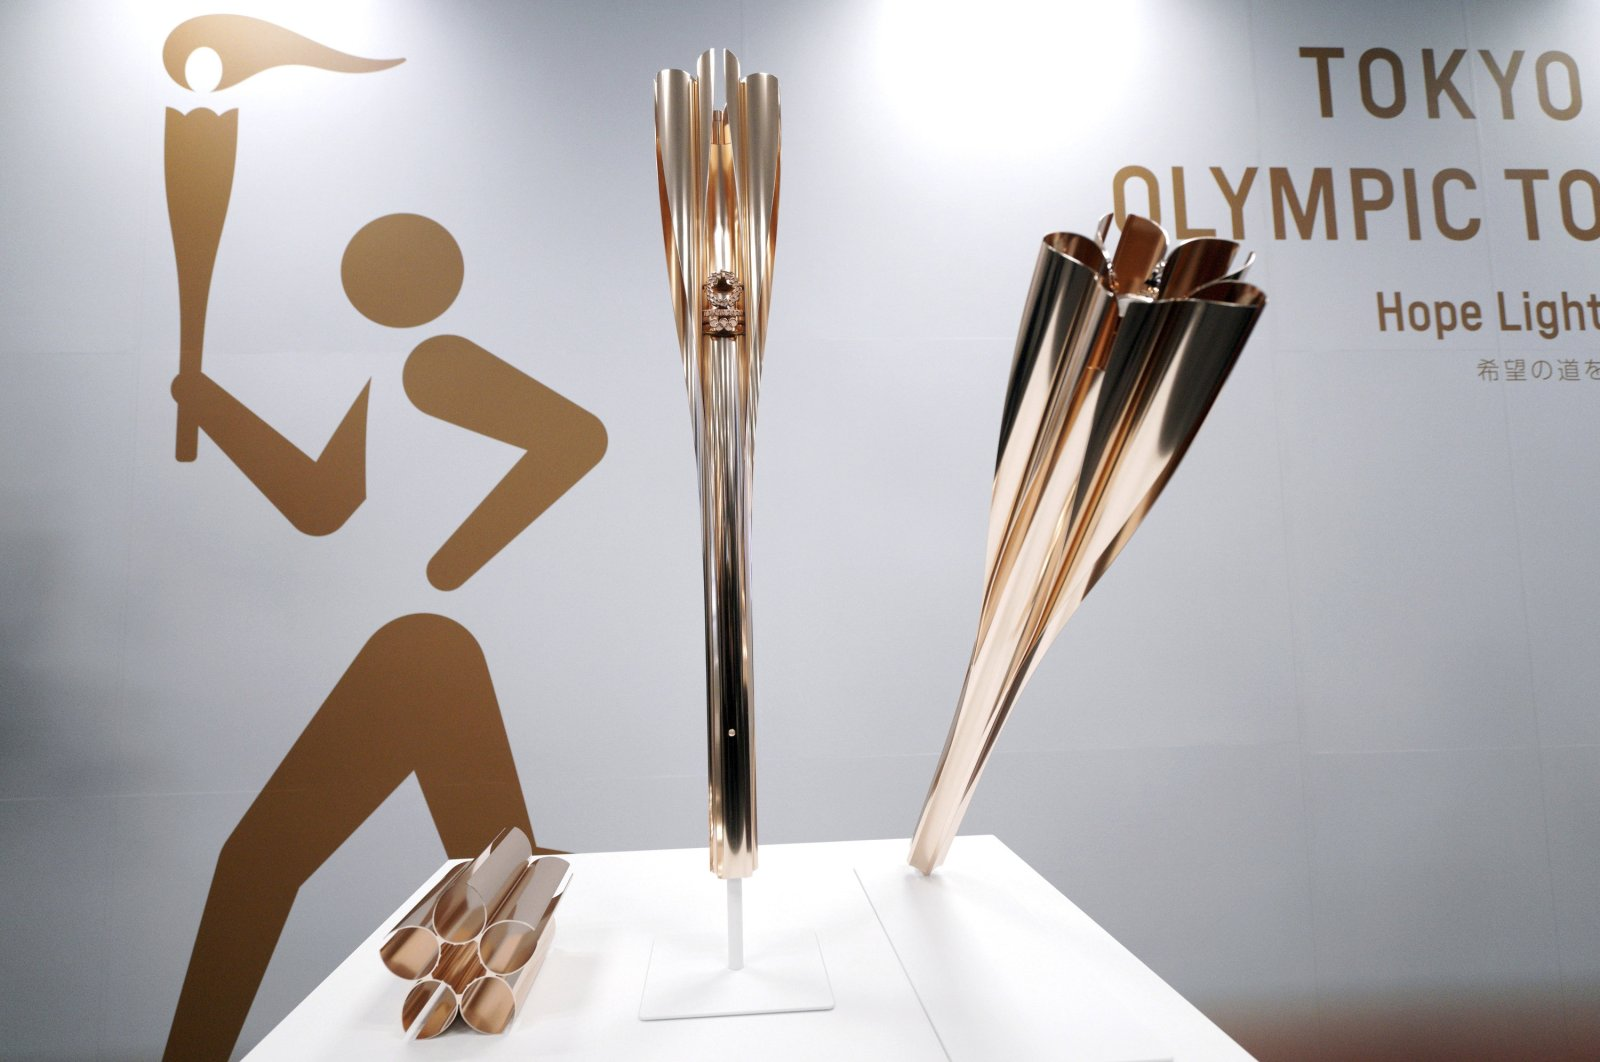 Olympic torches of the Tokyo 2020 Olympic Games are displayed during a press conference in Tokyo, Japan, March 20, 2019. (AP Photo)